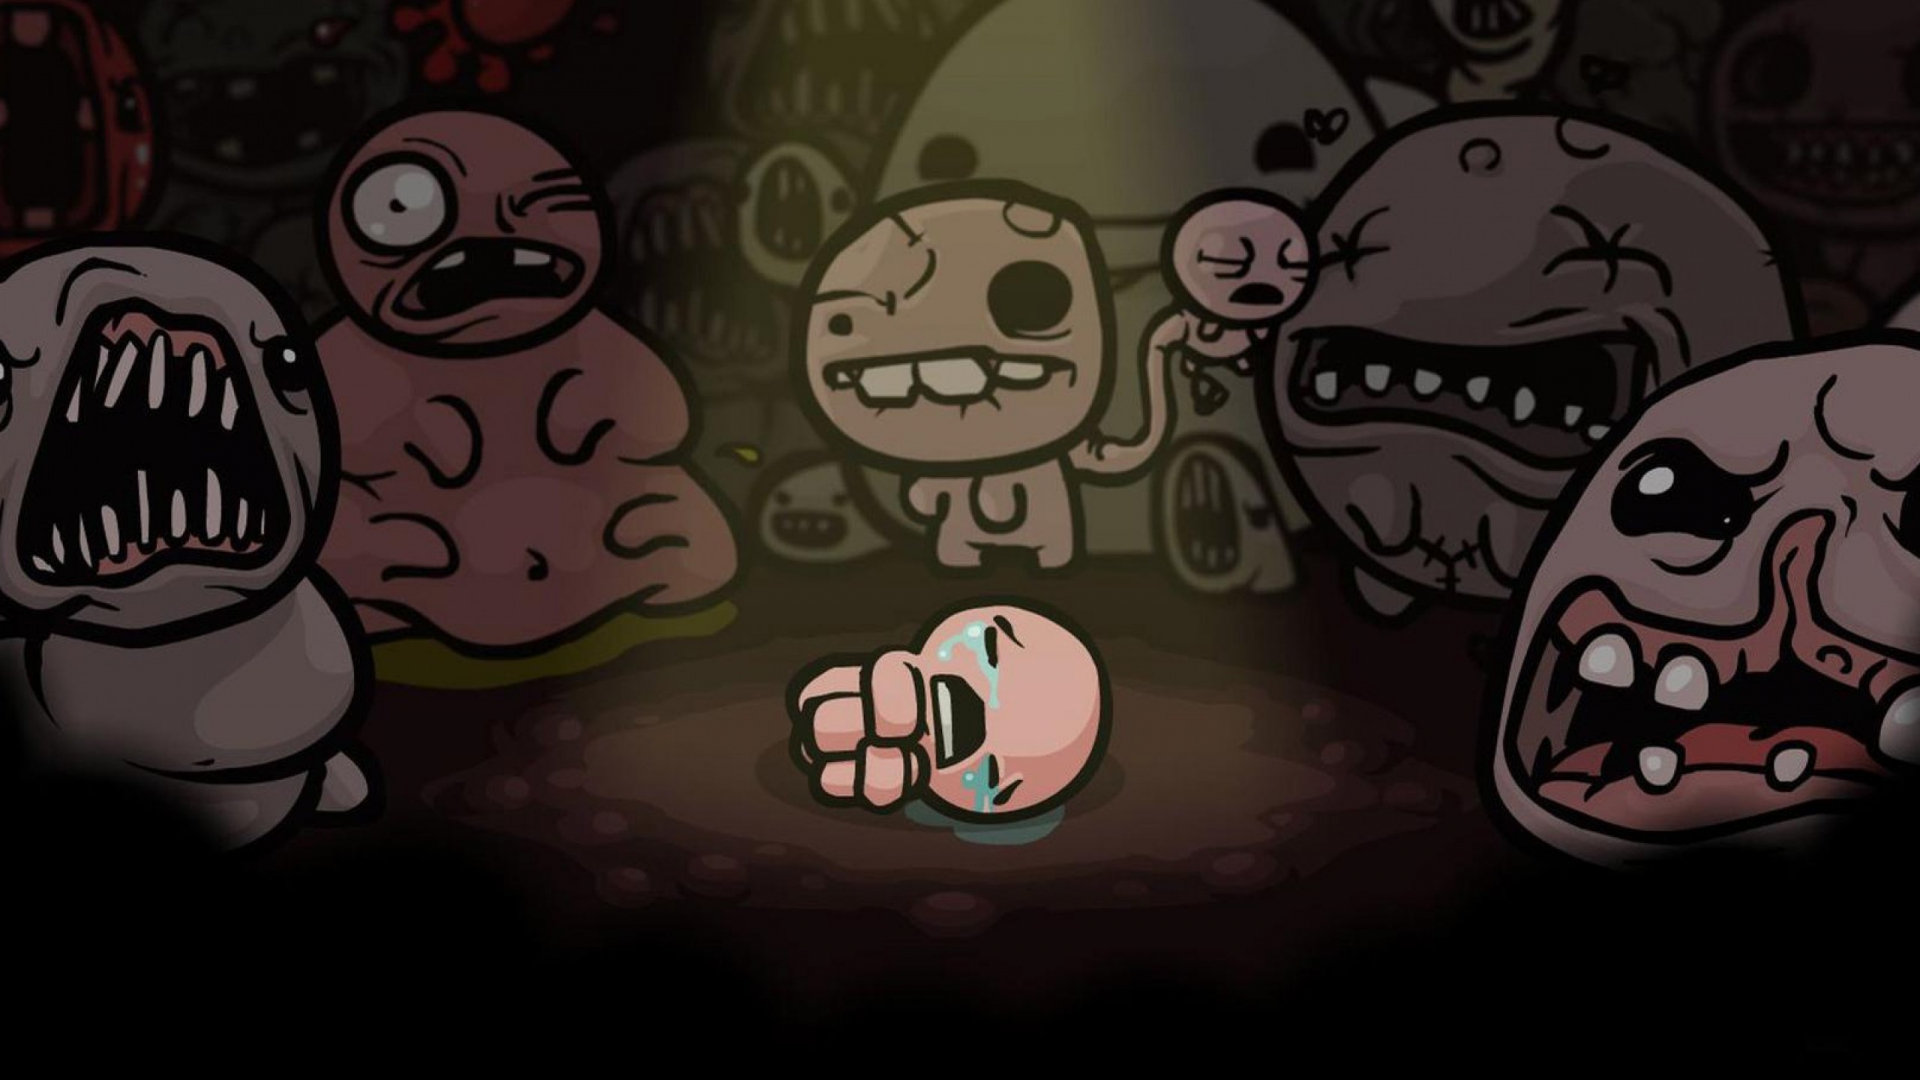 Free Download The Binding Of Isaac Wallpapers Freshwallpapers